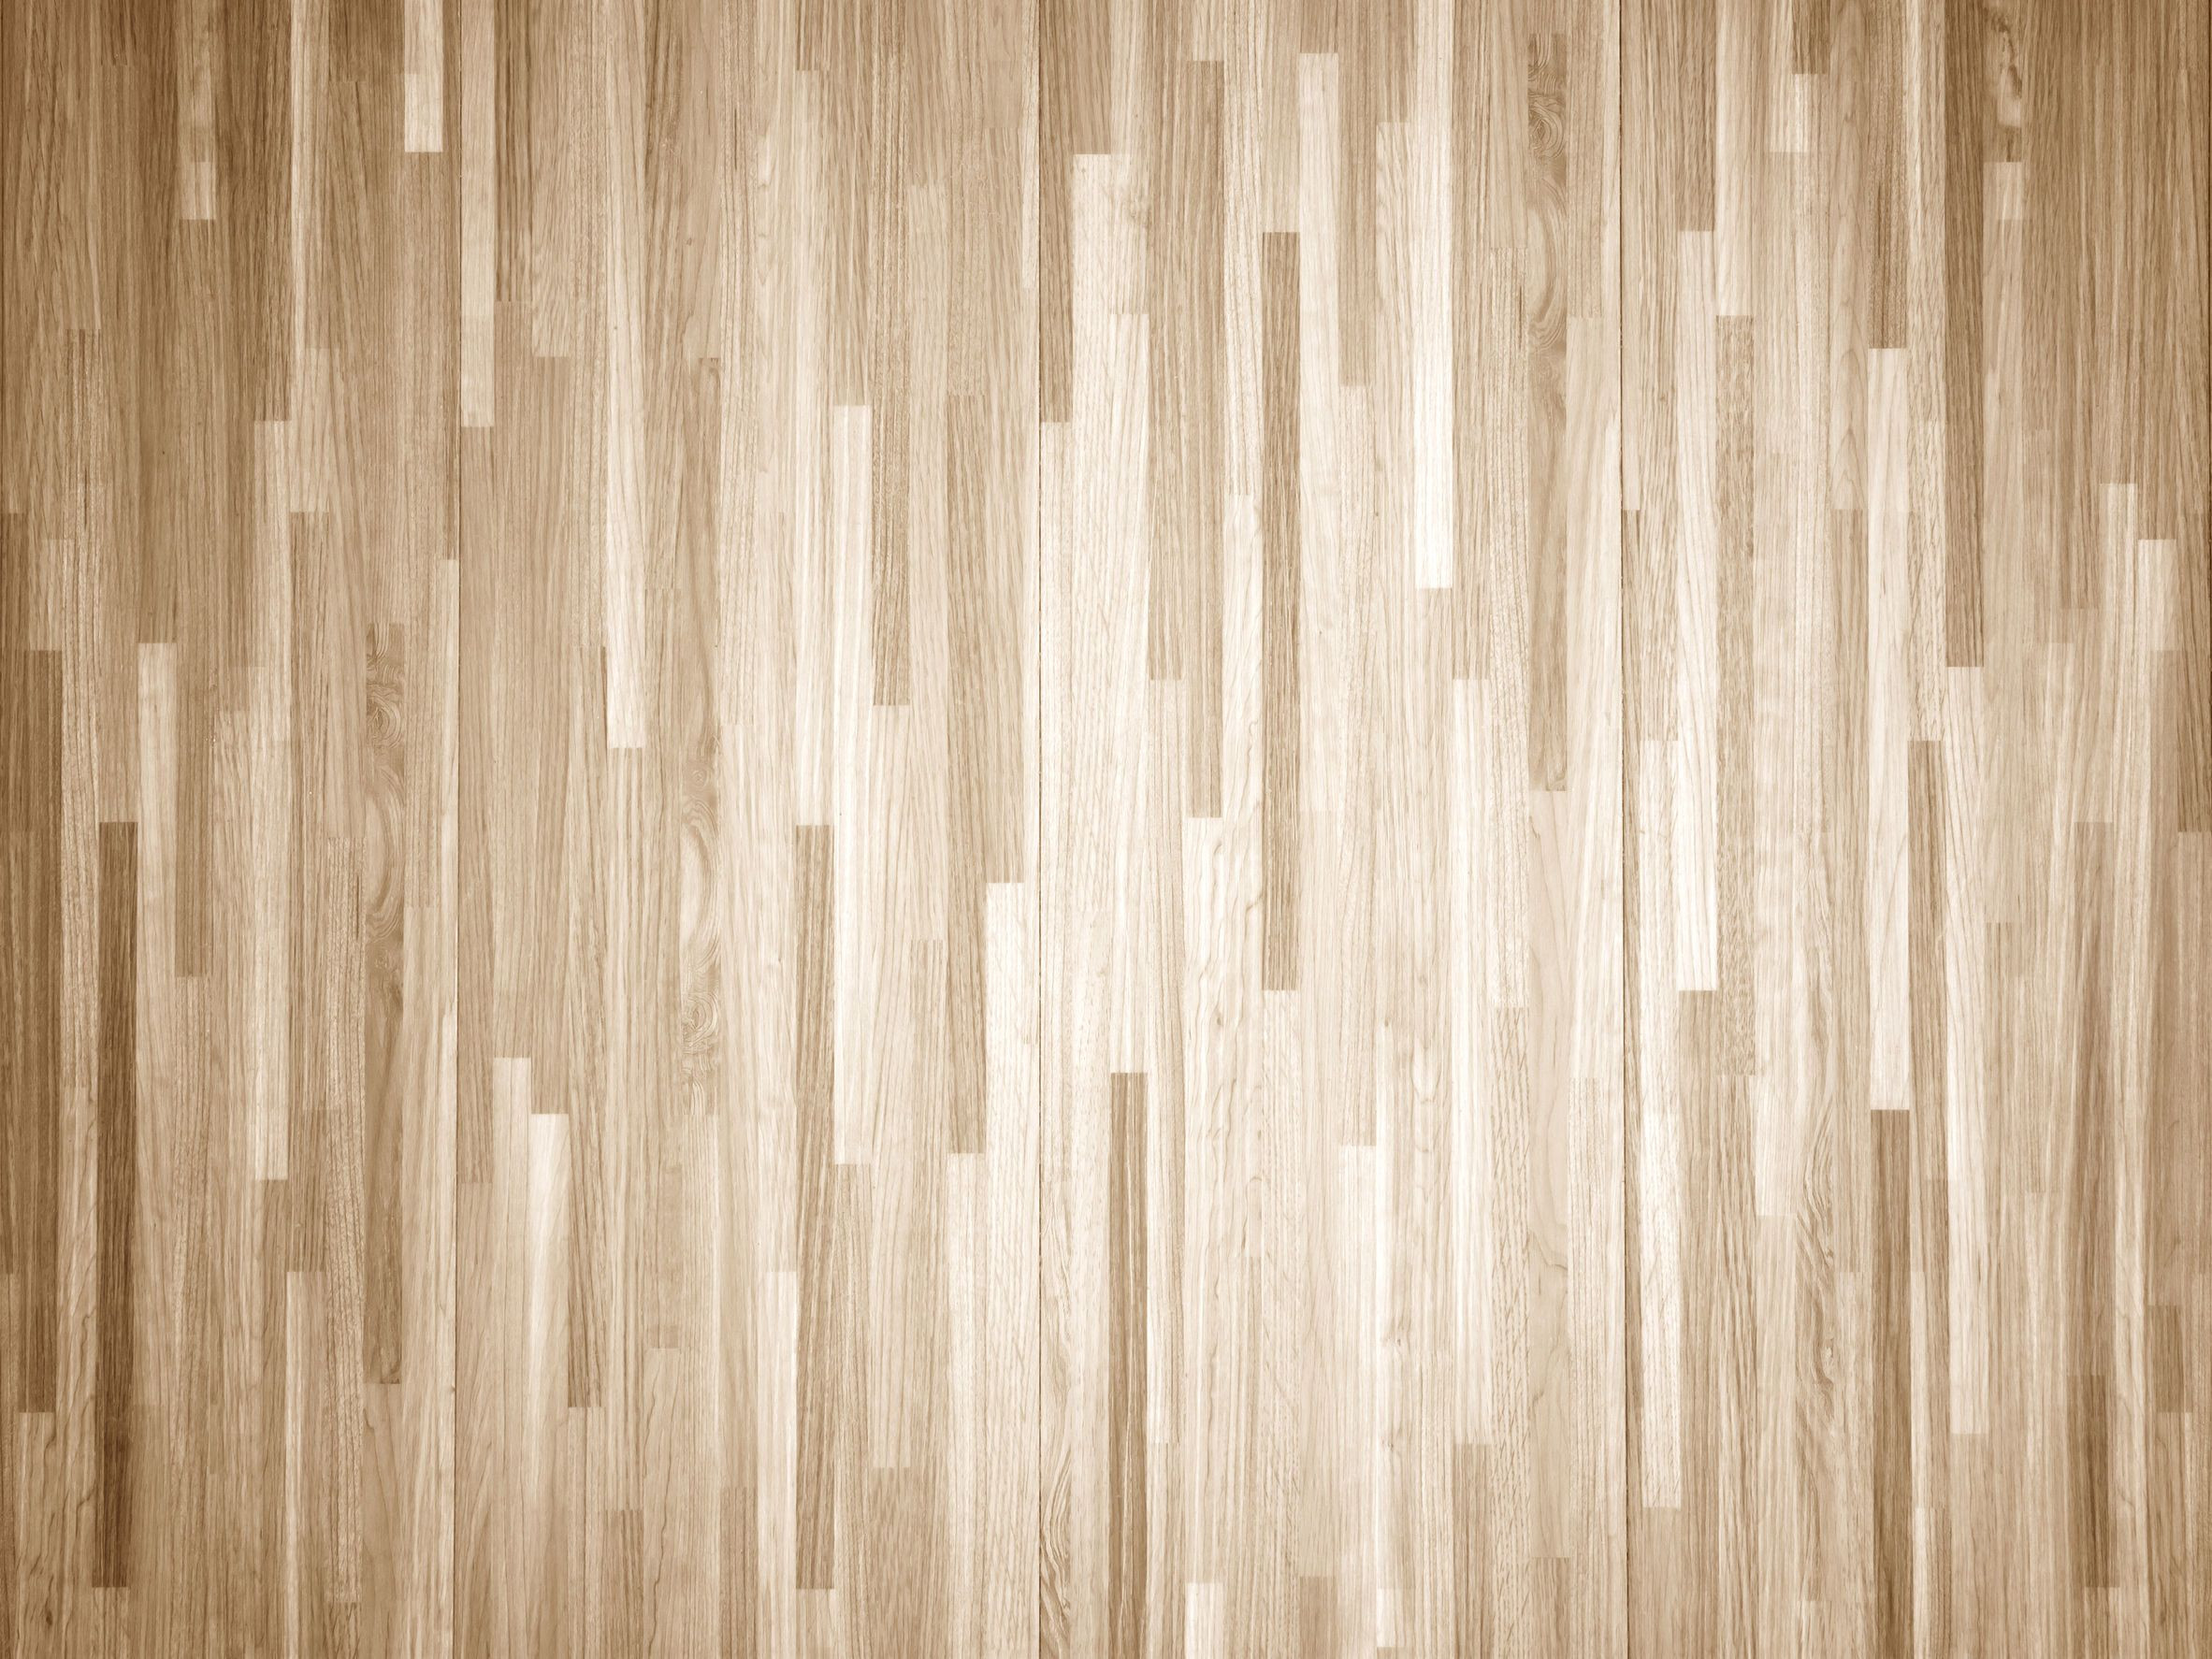 companies that refinish hardwood floors of how to chemically strip wood floors woodfloordoctor com with you